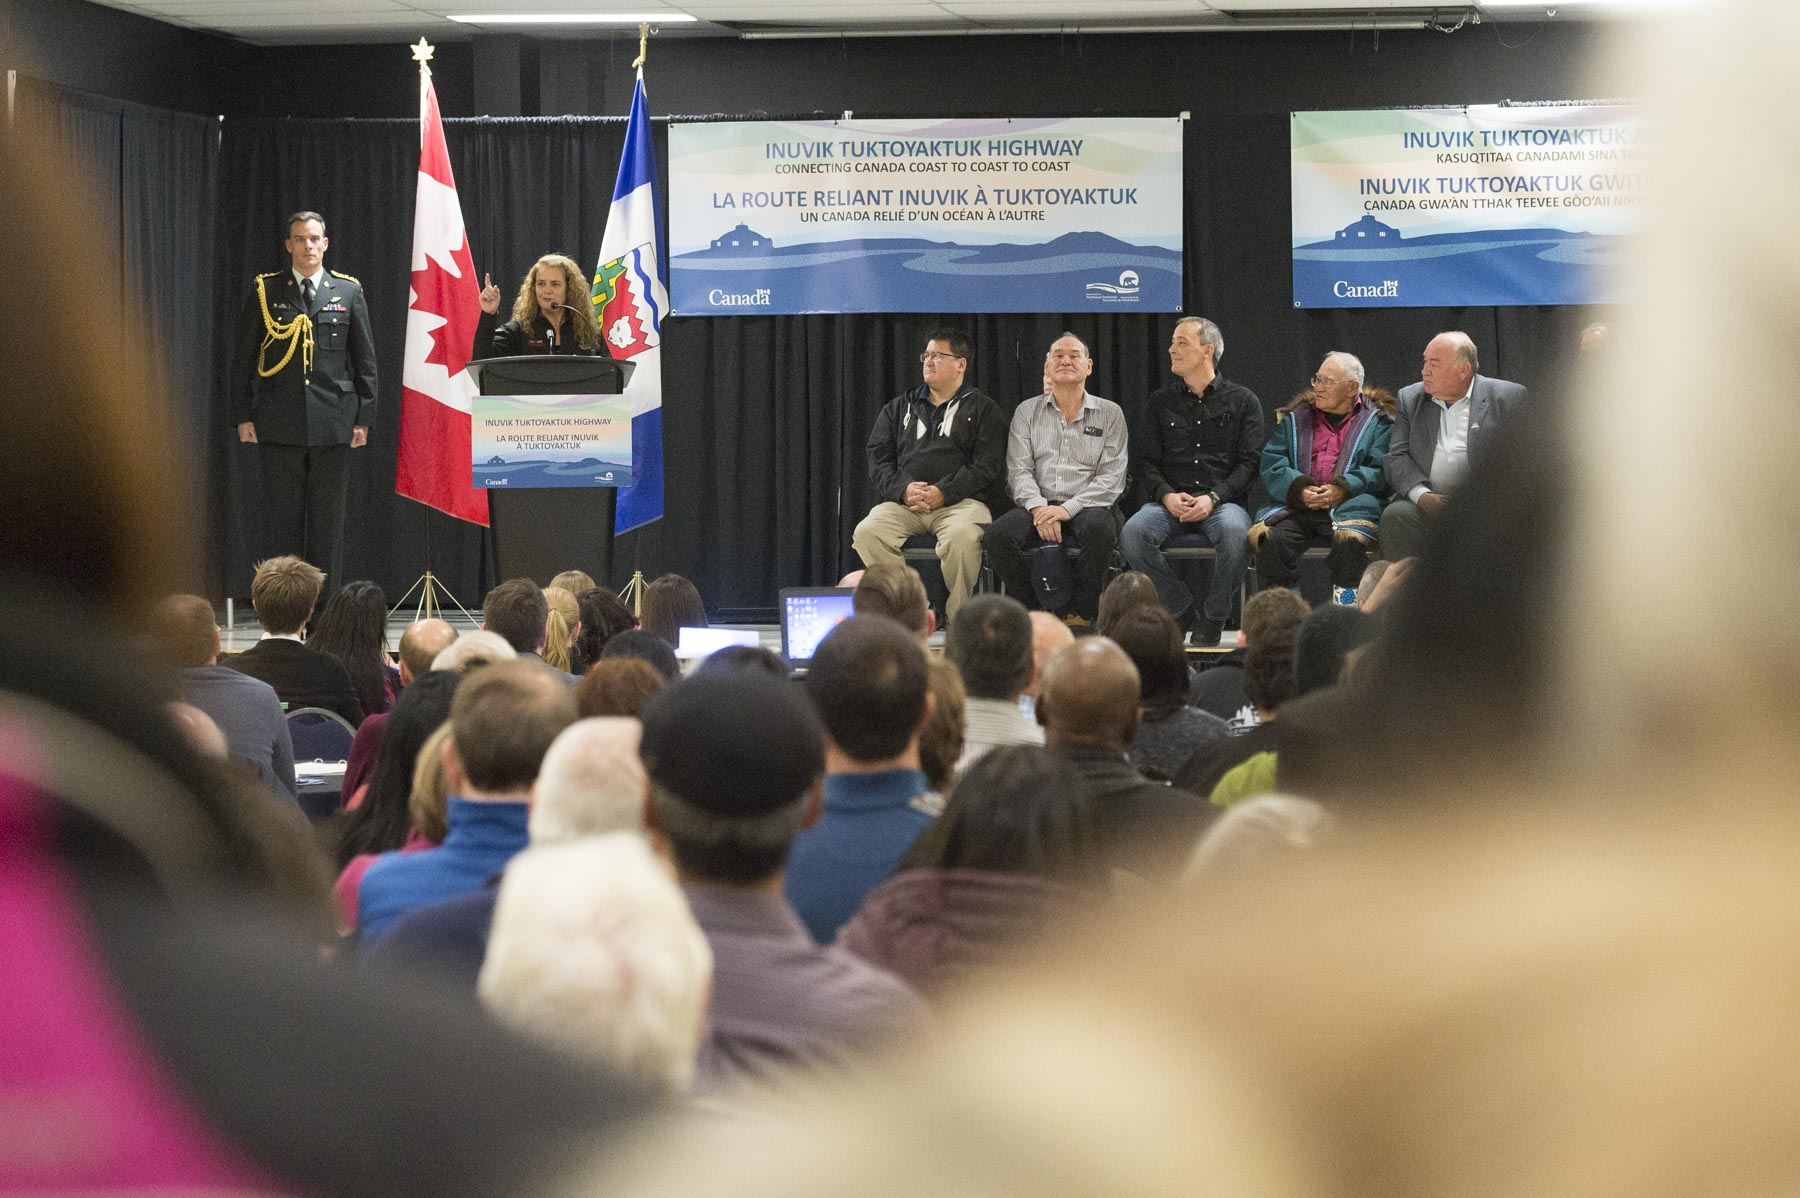 This full day event started with a ceremony in Inuvik, where Her Excellency delivered remarks to mark this historical.